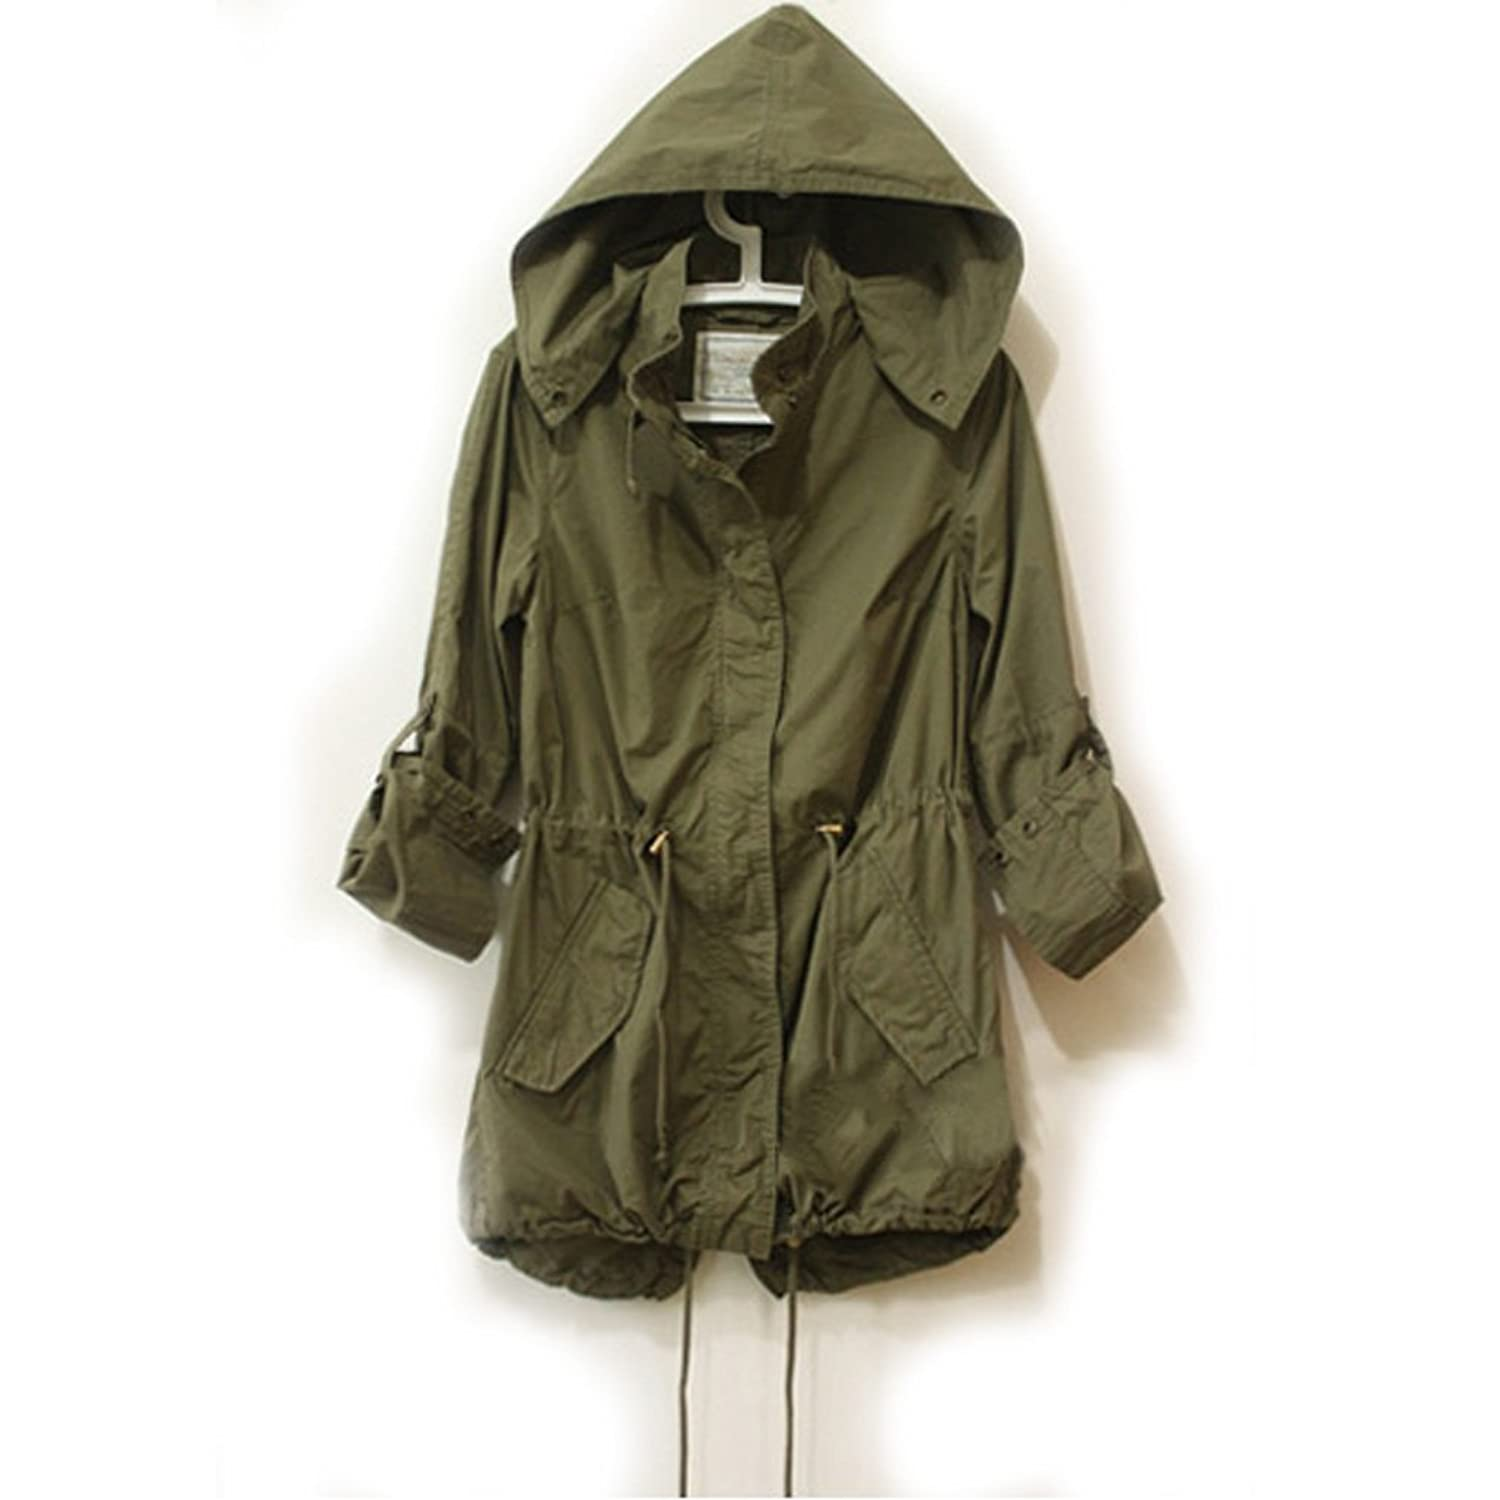 Army green coats can be used as camouflage garments because of how well they blend in with nature. Army green coats can be made from heavier weight fabric with lining for warmth, with hoods, without hoods and can be short or long lengths.